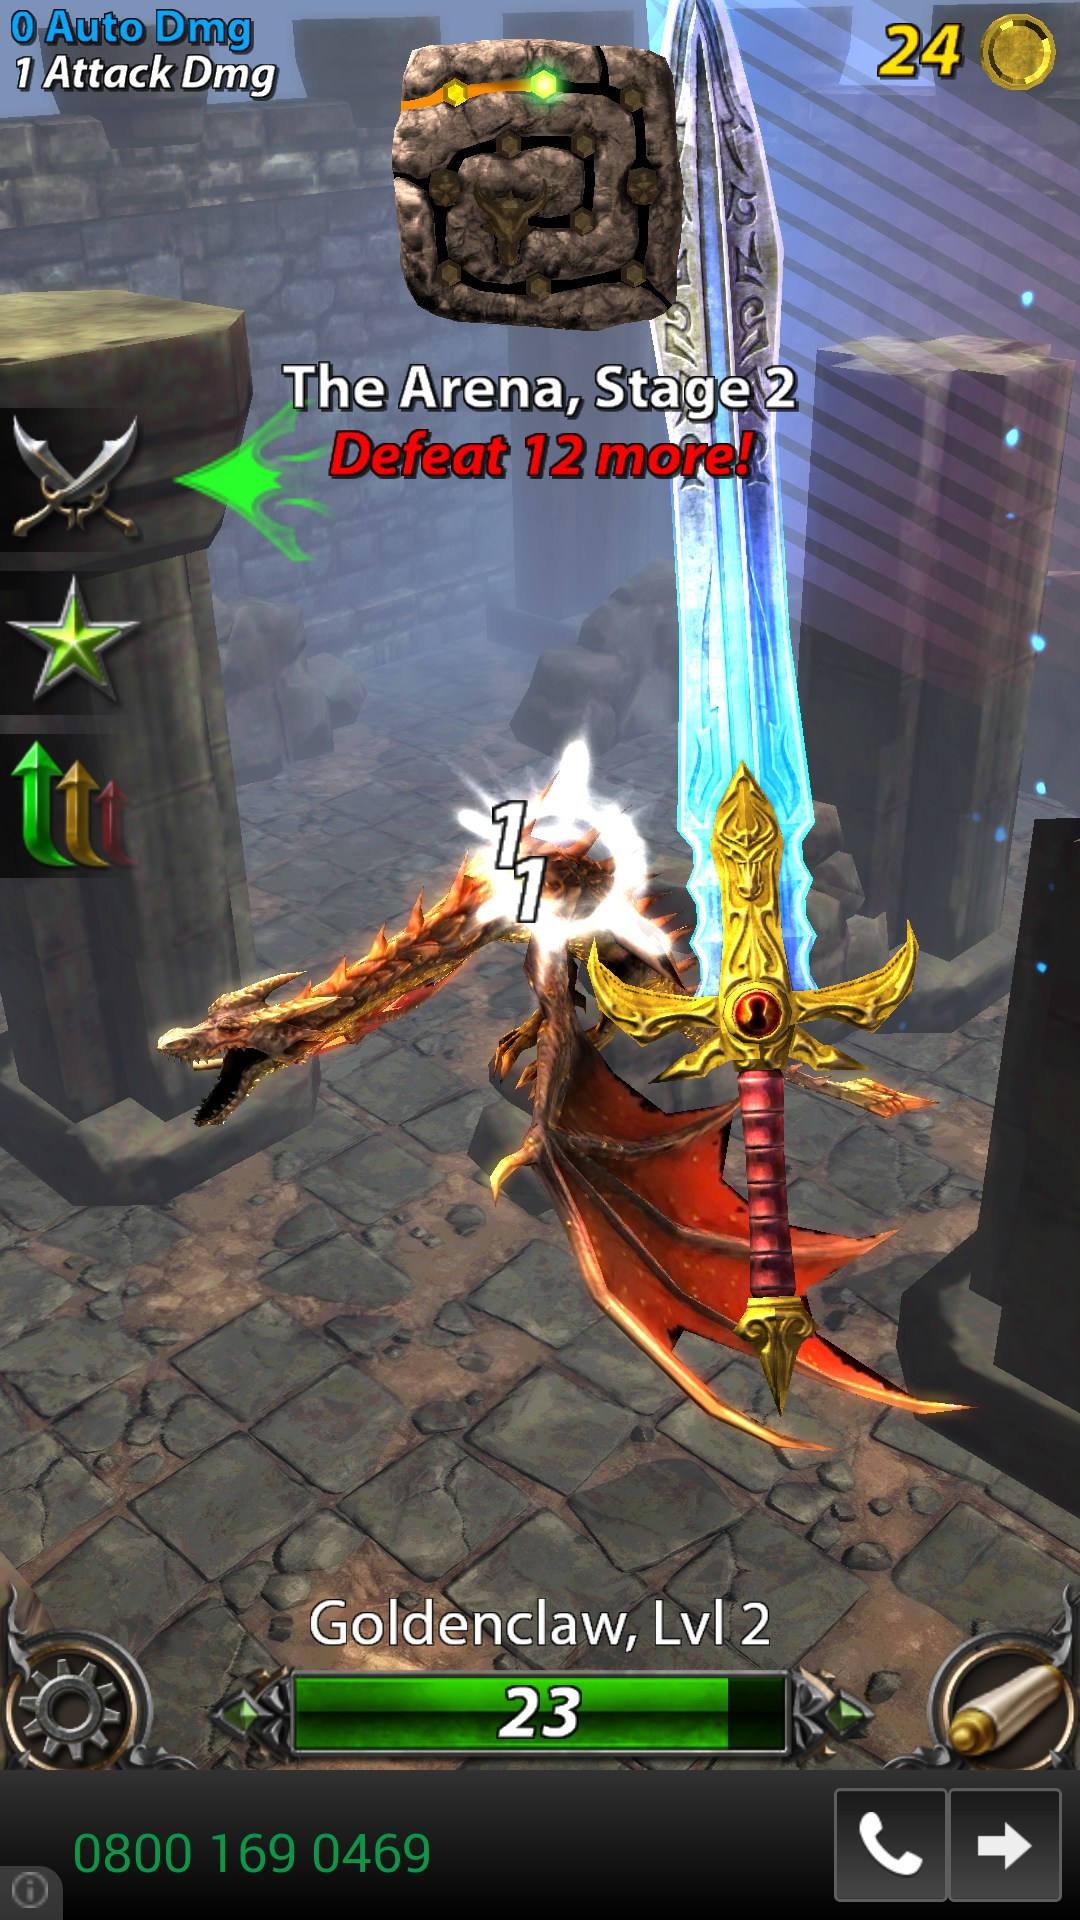 Epic dragon clicker games for android 2018 free for Epic free download